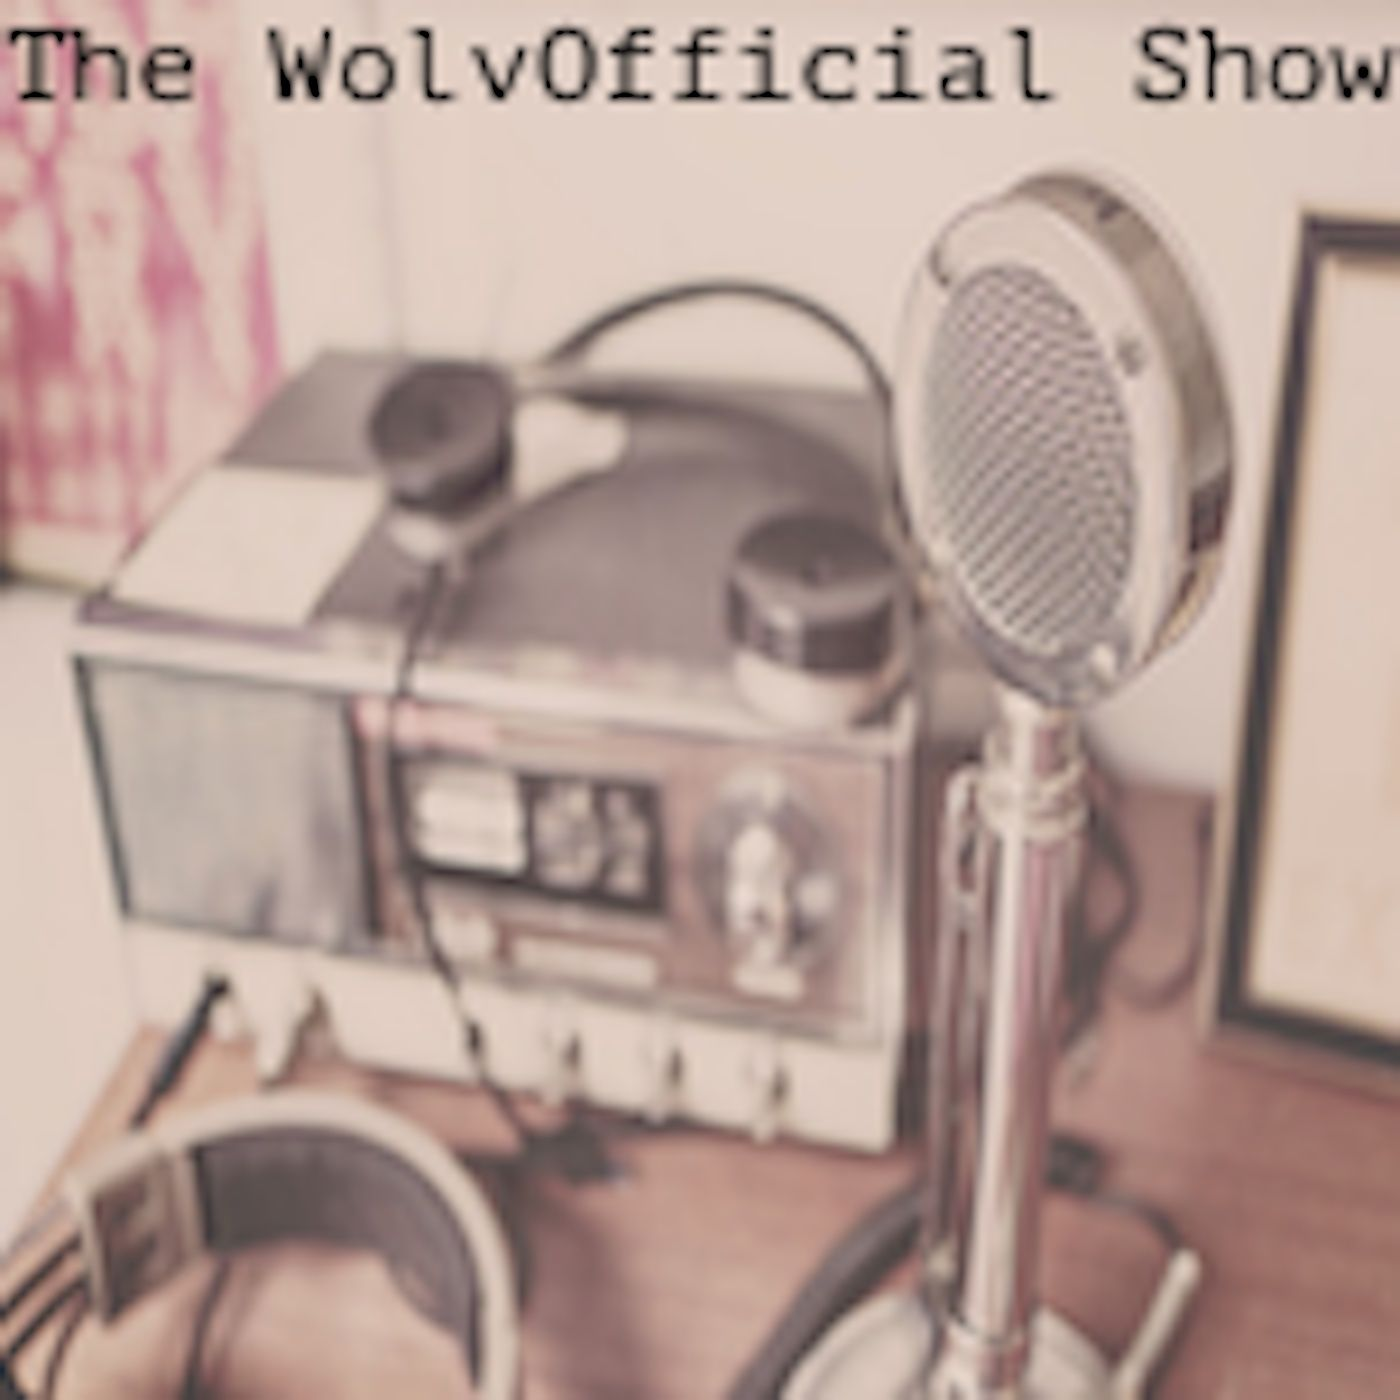 The WolvOfficial Show